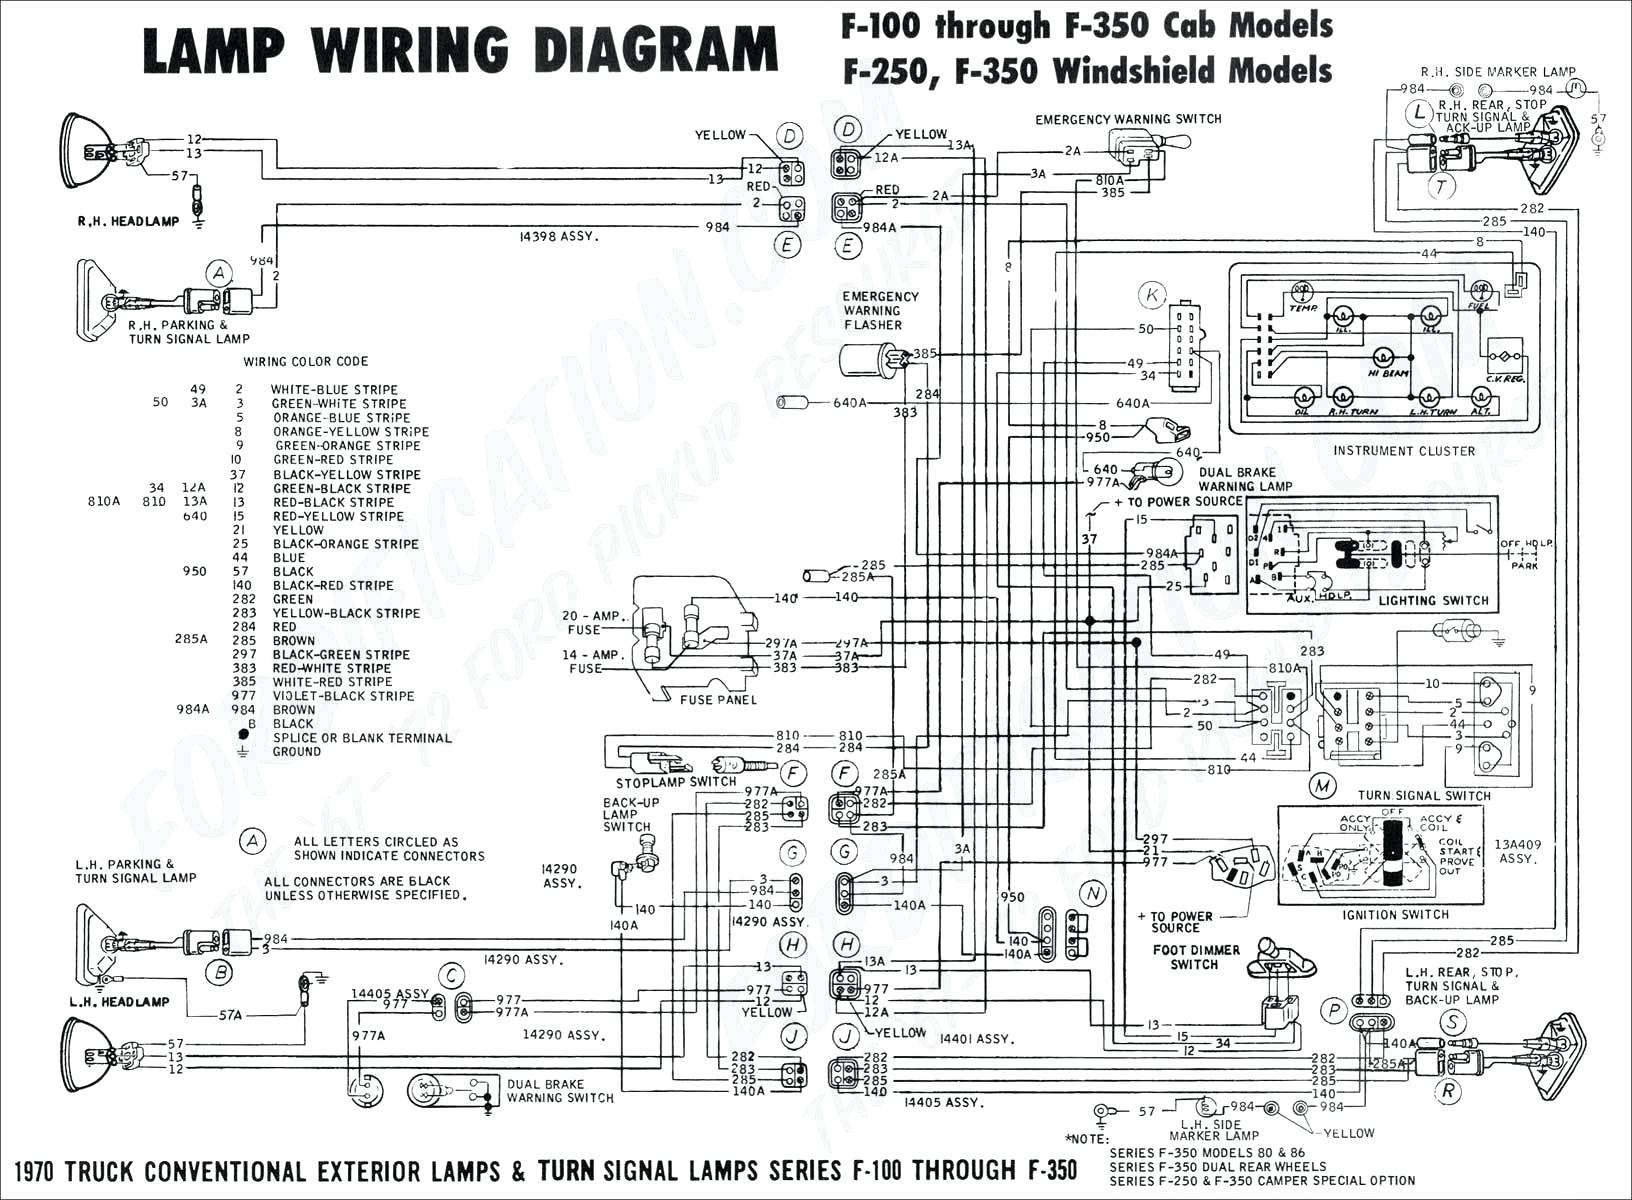 Lawn Mower Starter Solenoid Wiring Diagram Free Download - Riding Lawn Mower Starter Solenoid Wiring Diagram